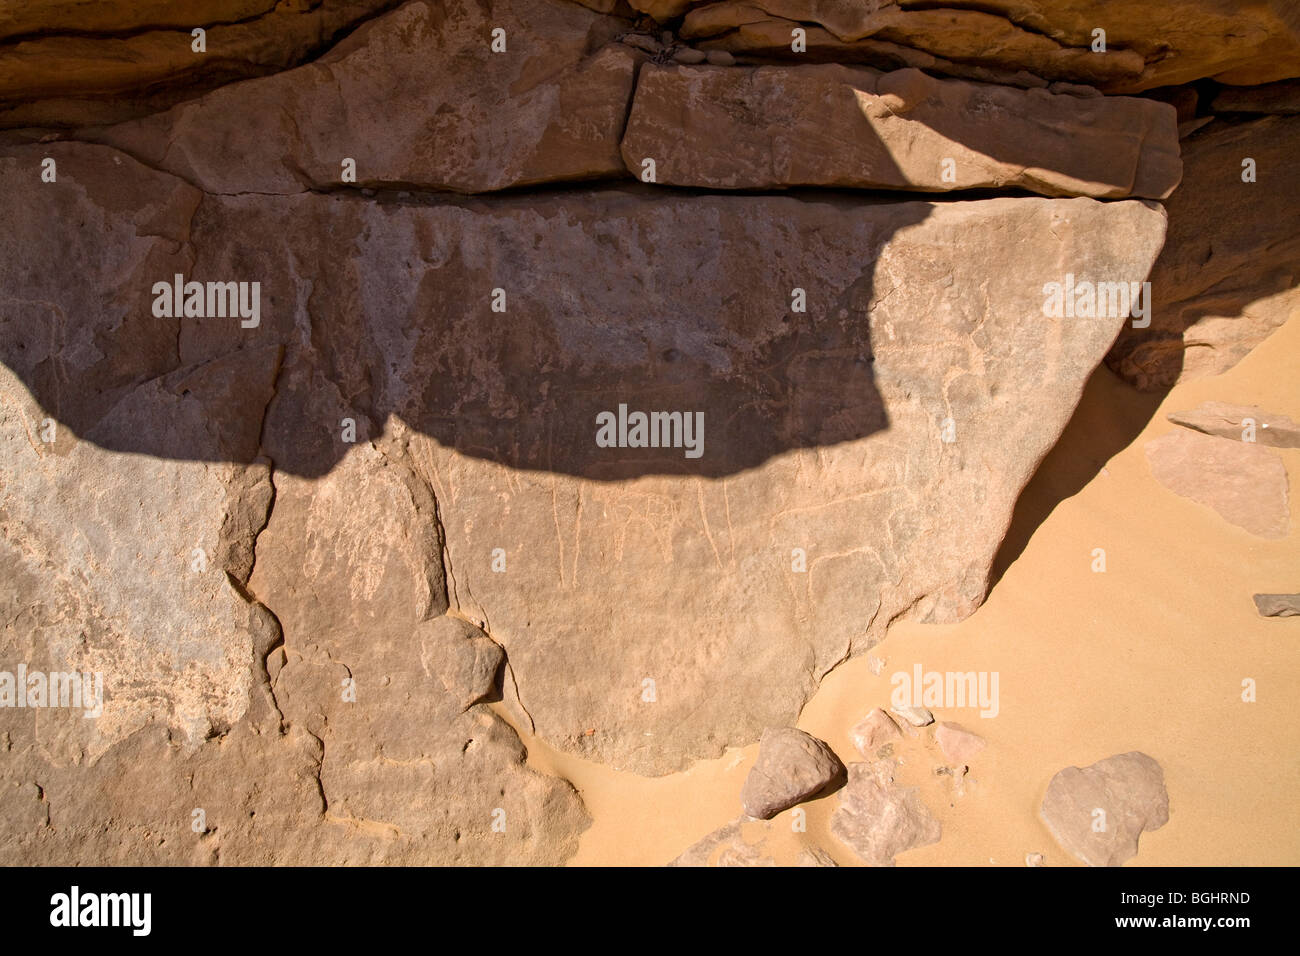 Close up of some of the images at Winklers famous Rock-Art site 26 in Wadi Abu Wasil in the Eastern Desert of Egypt. - Stock Image